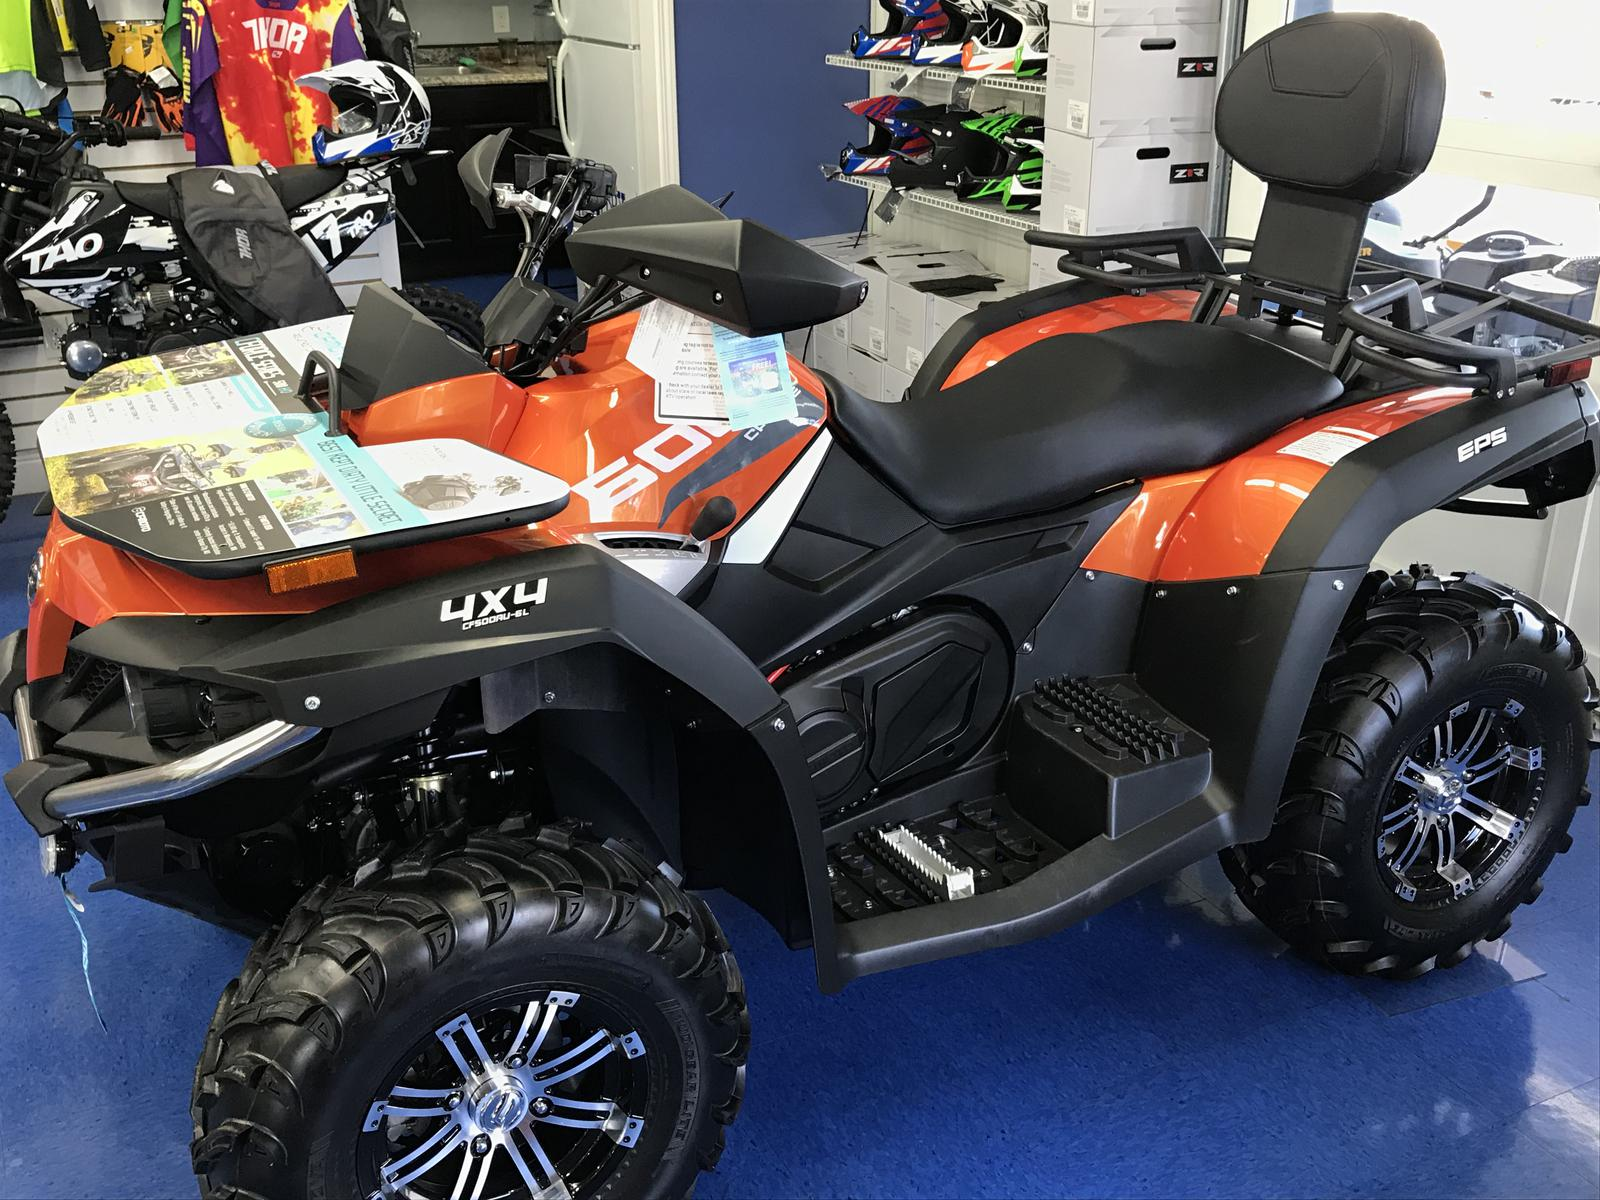 ATV CF MOTO: types, models, features and reviews of owners 87